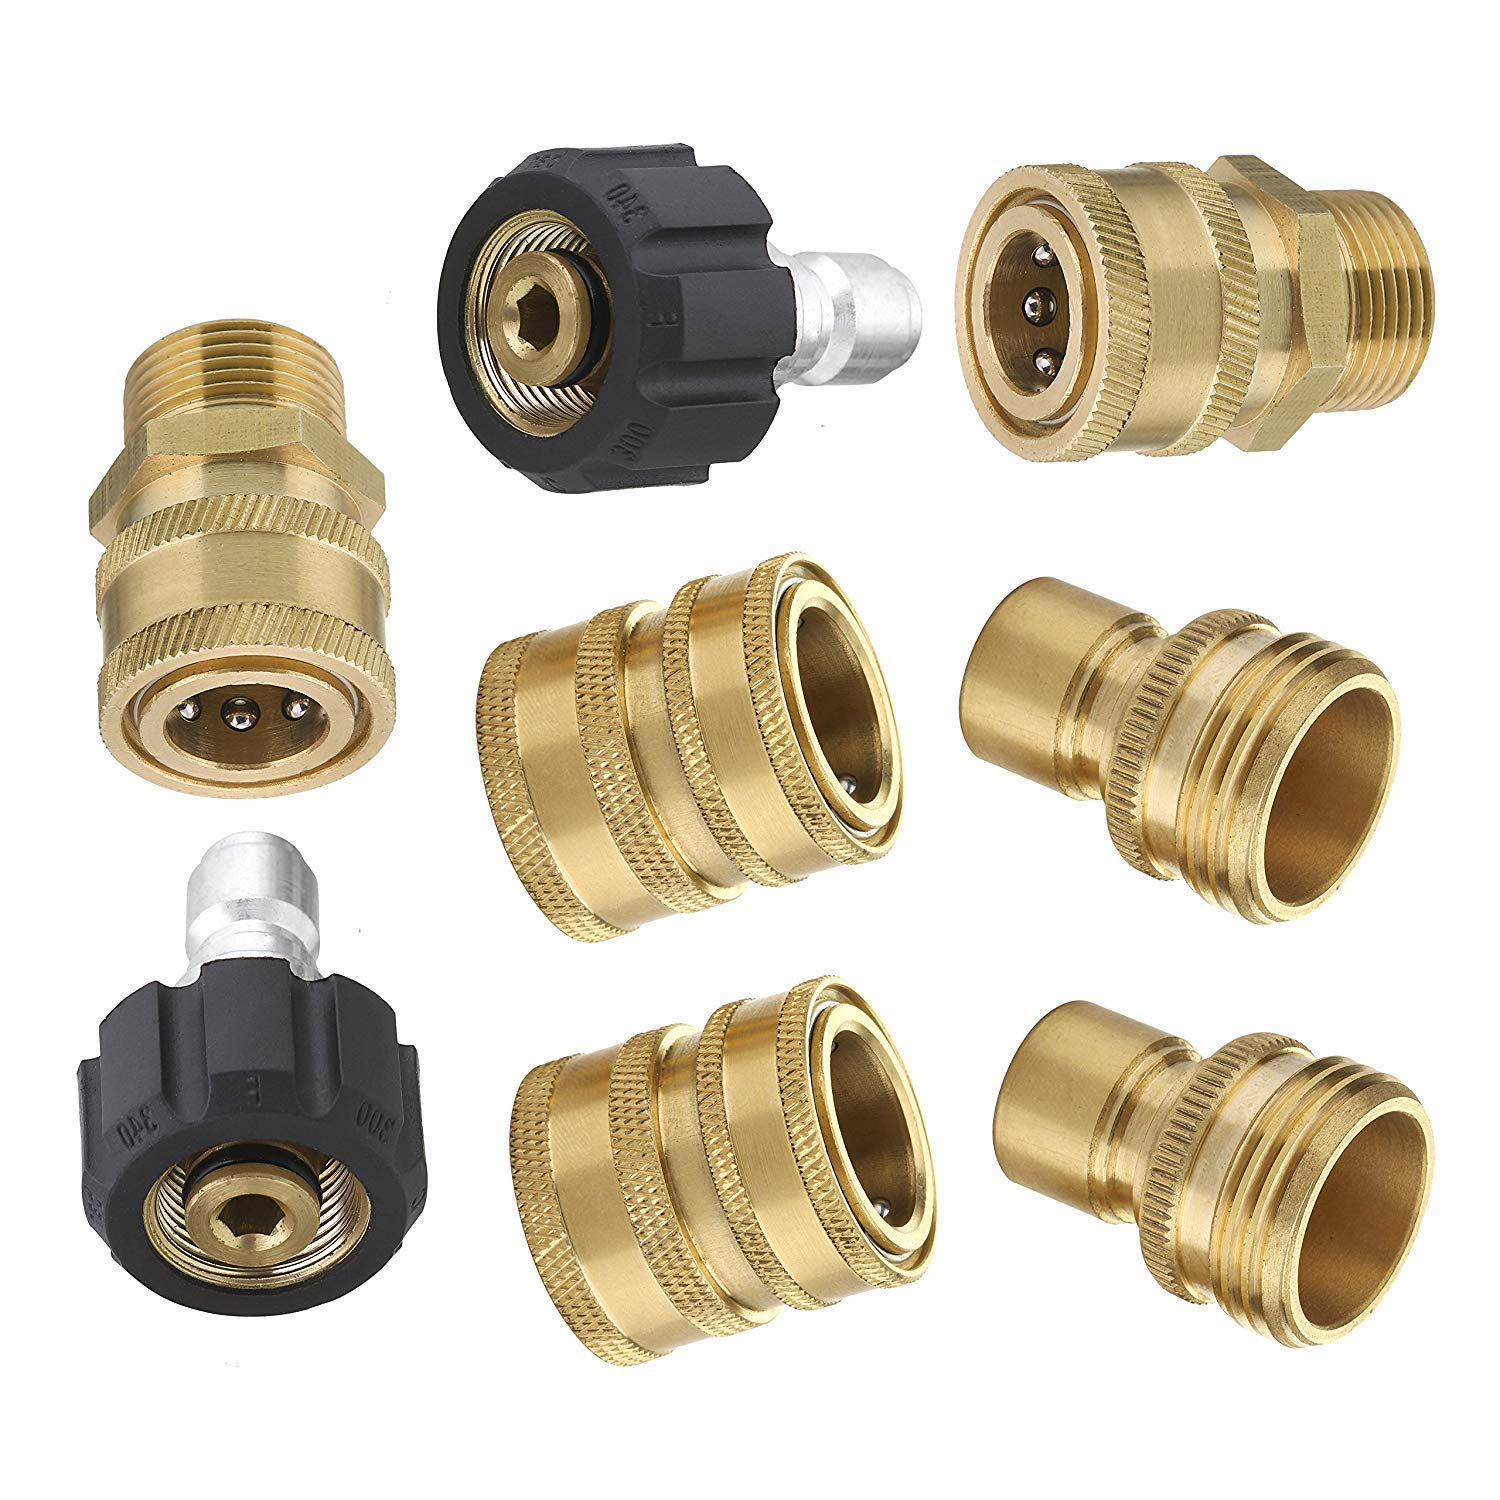 8pcs Pressure Washer Adapter Kit,Garden Hose Quick Connect Fittings,M22 Swivel to 3/8'' Quick Connect, 3/4'' to Quick Release by SYWAN